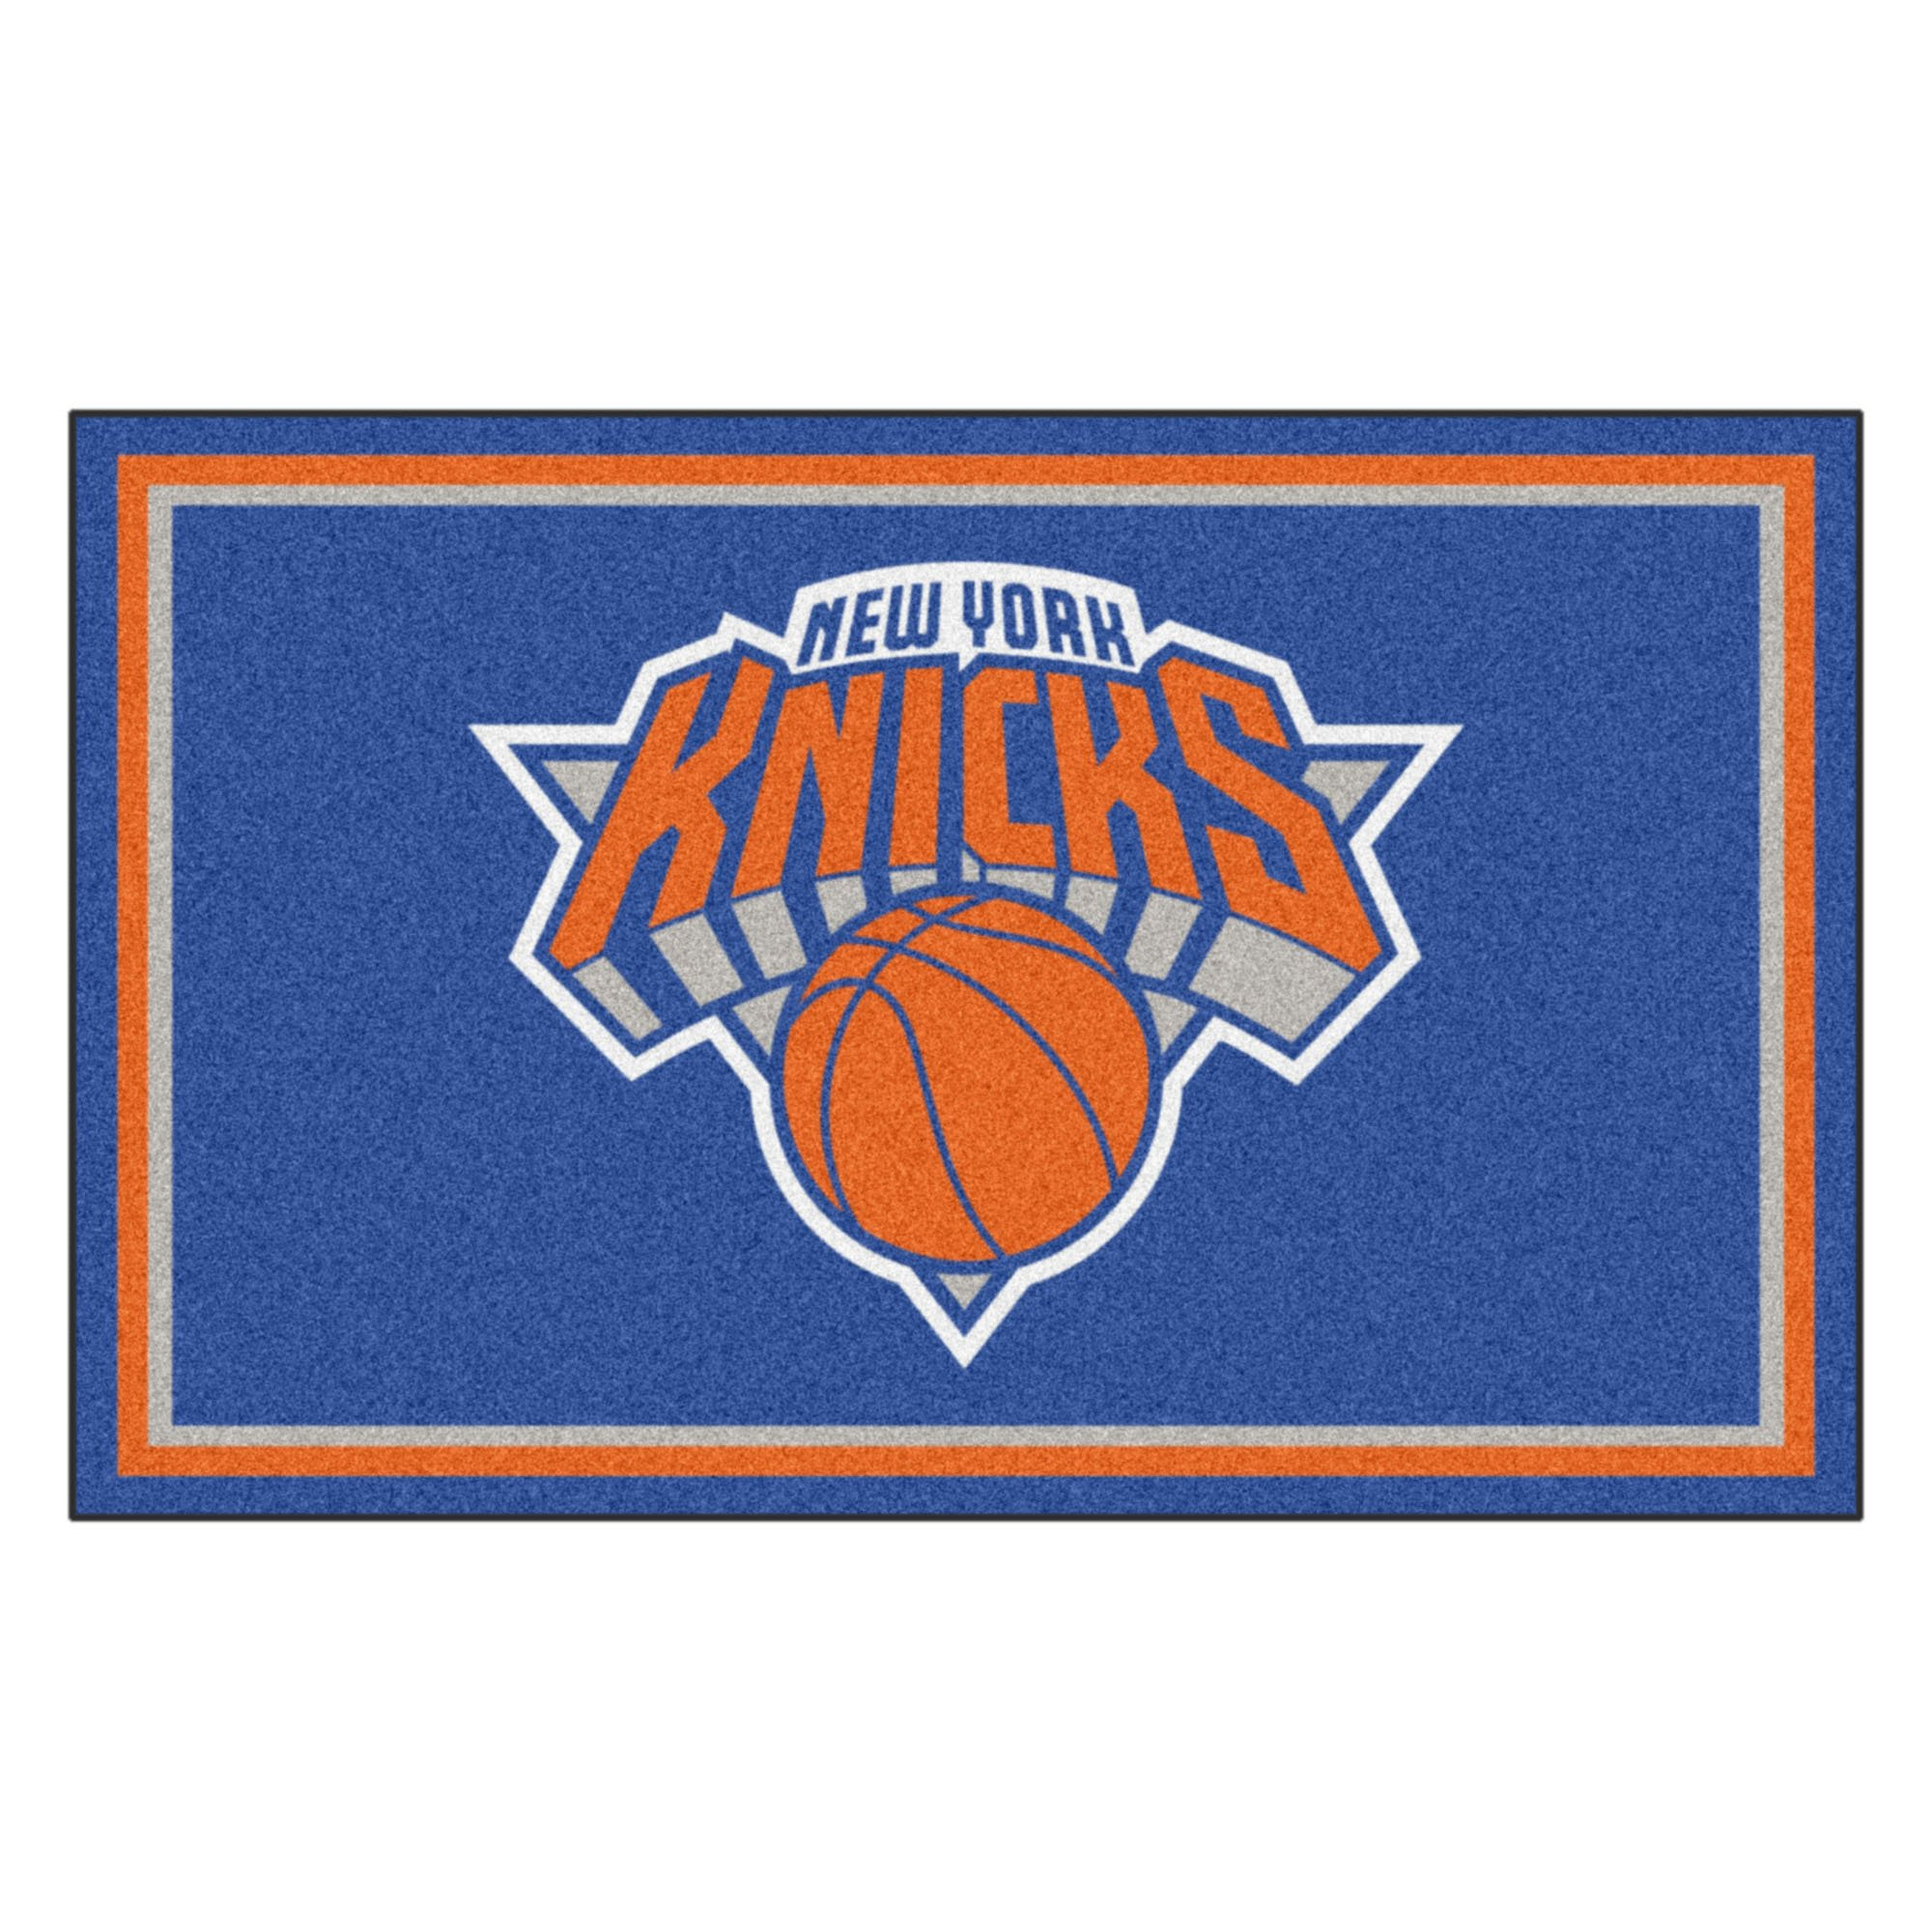 FANMATS 20437 44''x71'' Team Color NBA - New York Knicks Rug